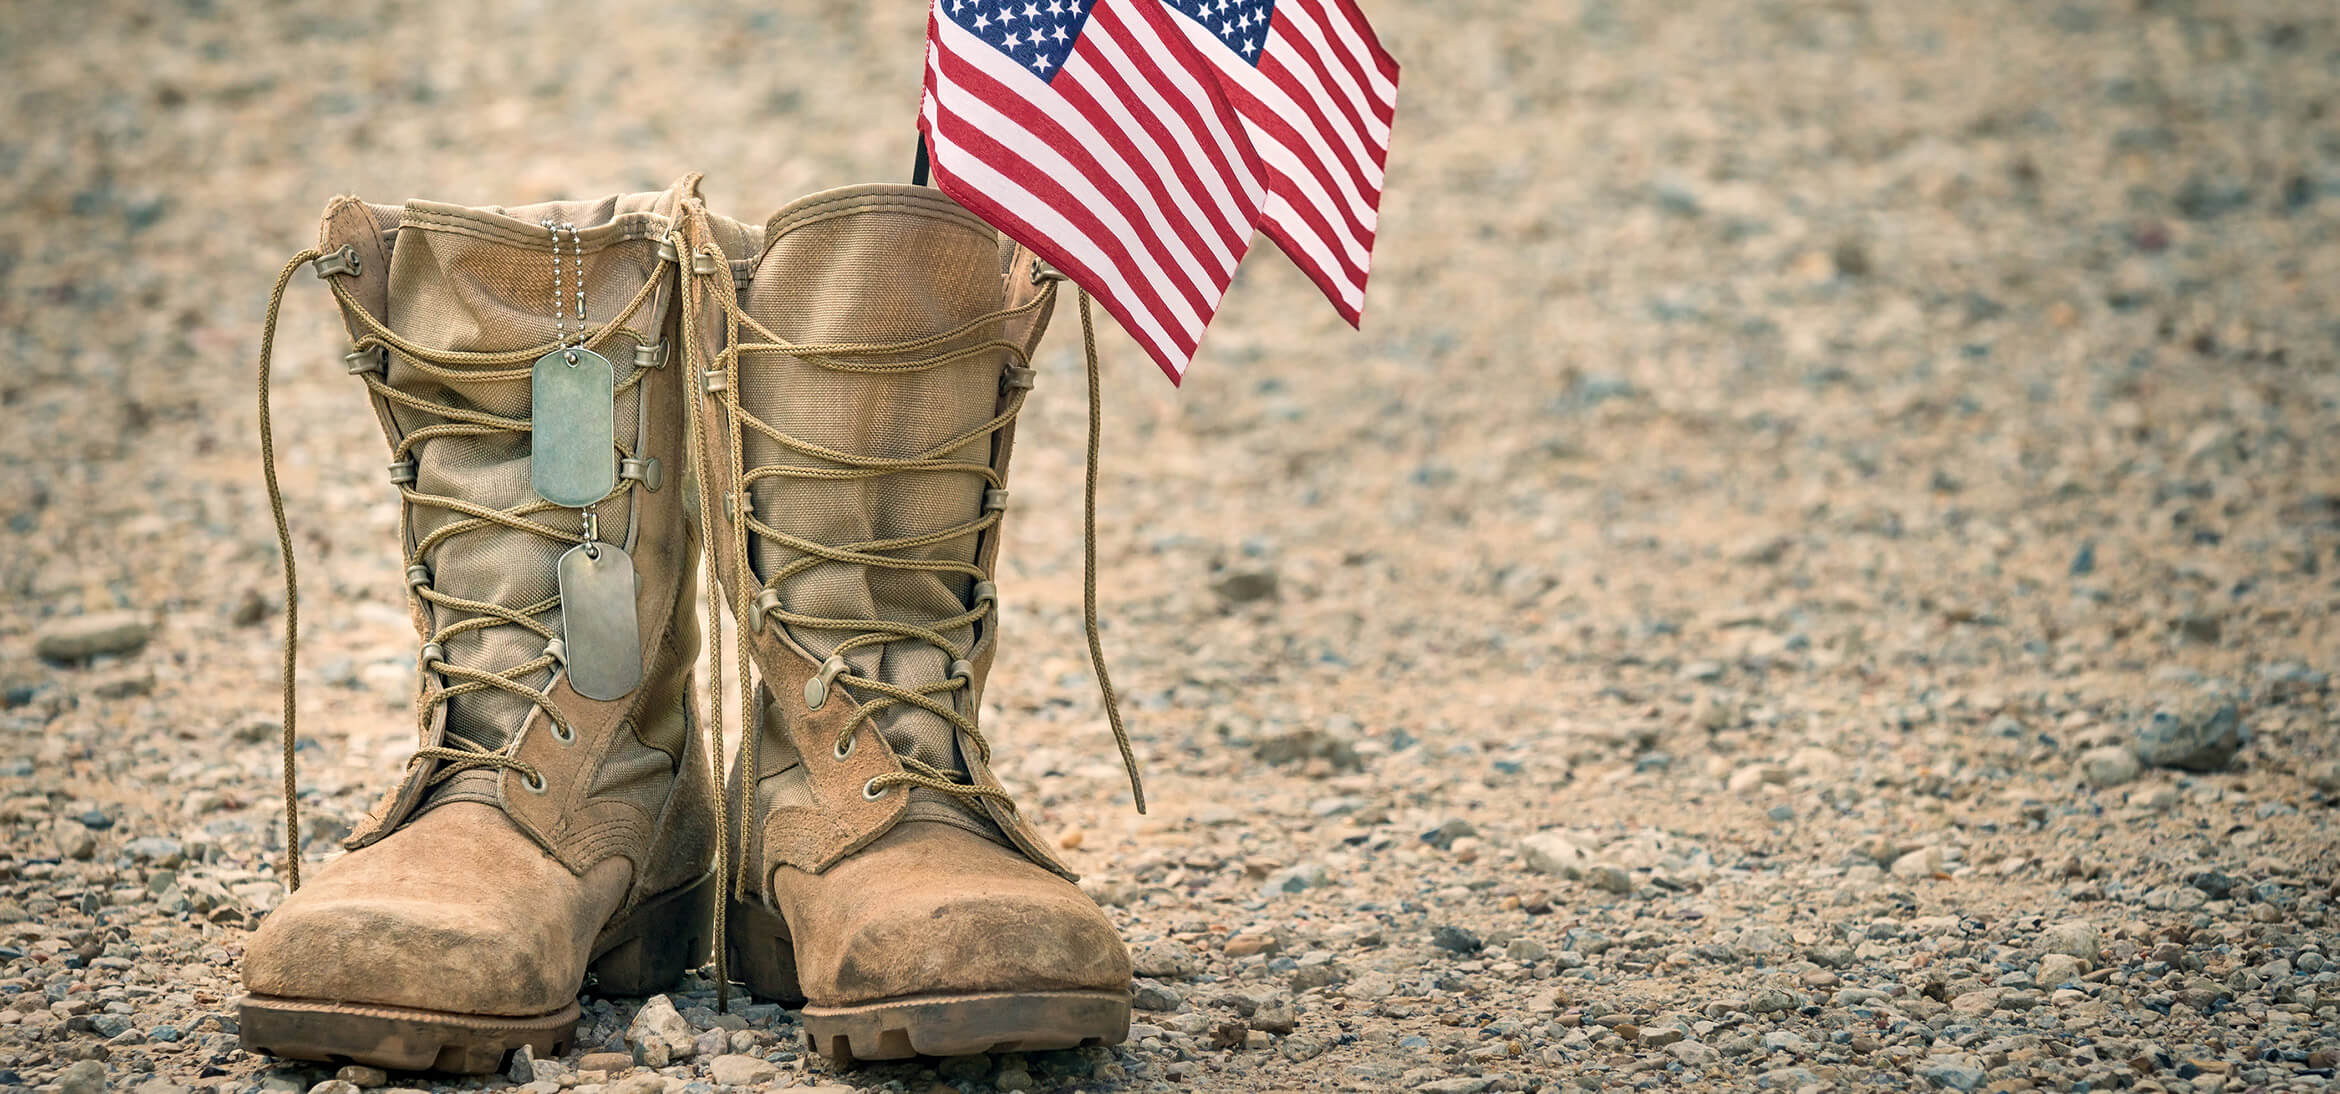 Combat boots with American flags